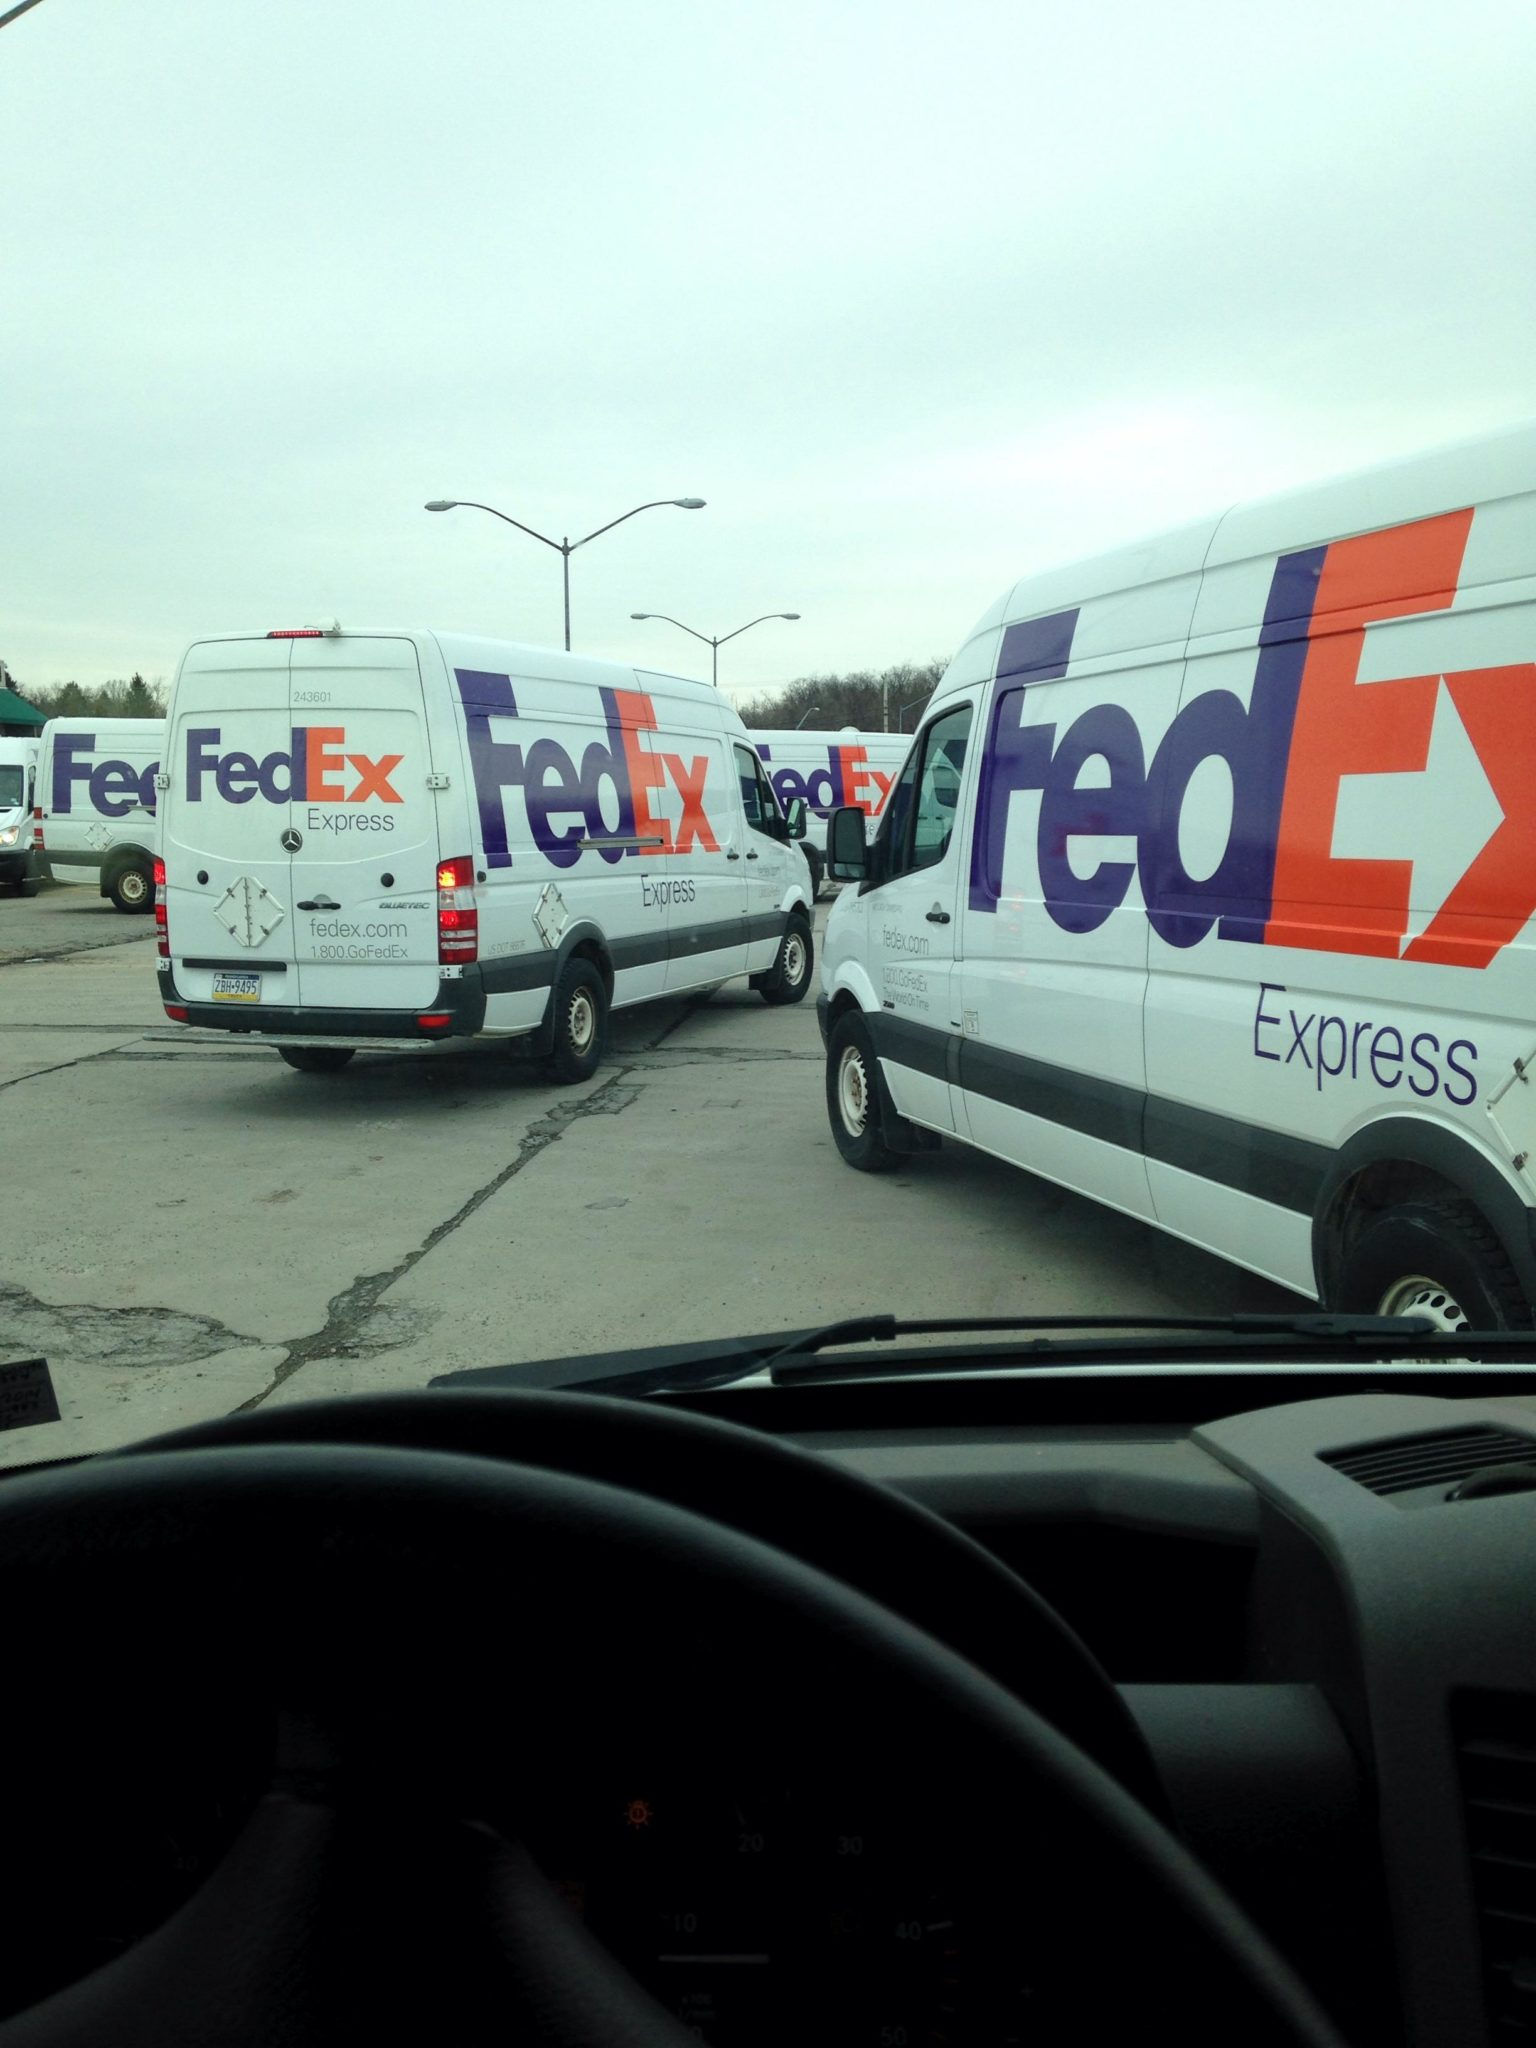 I Thought Seeing A Line Of Fedex Trucks Was Odd. But Then When I Found Out Why... Unbelievable